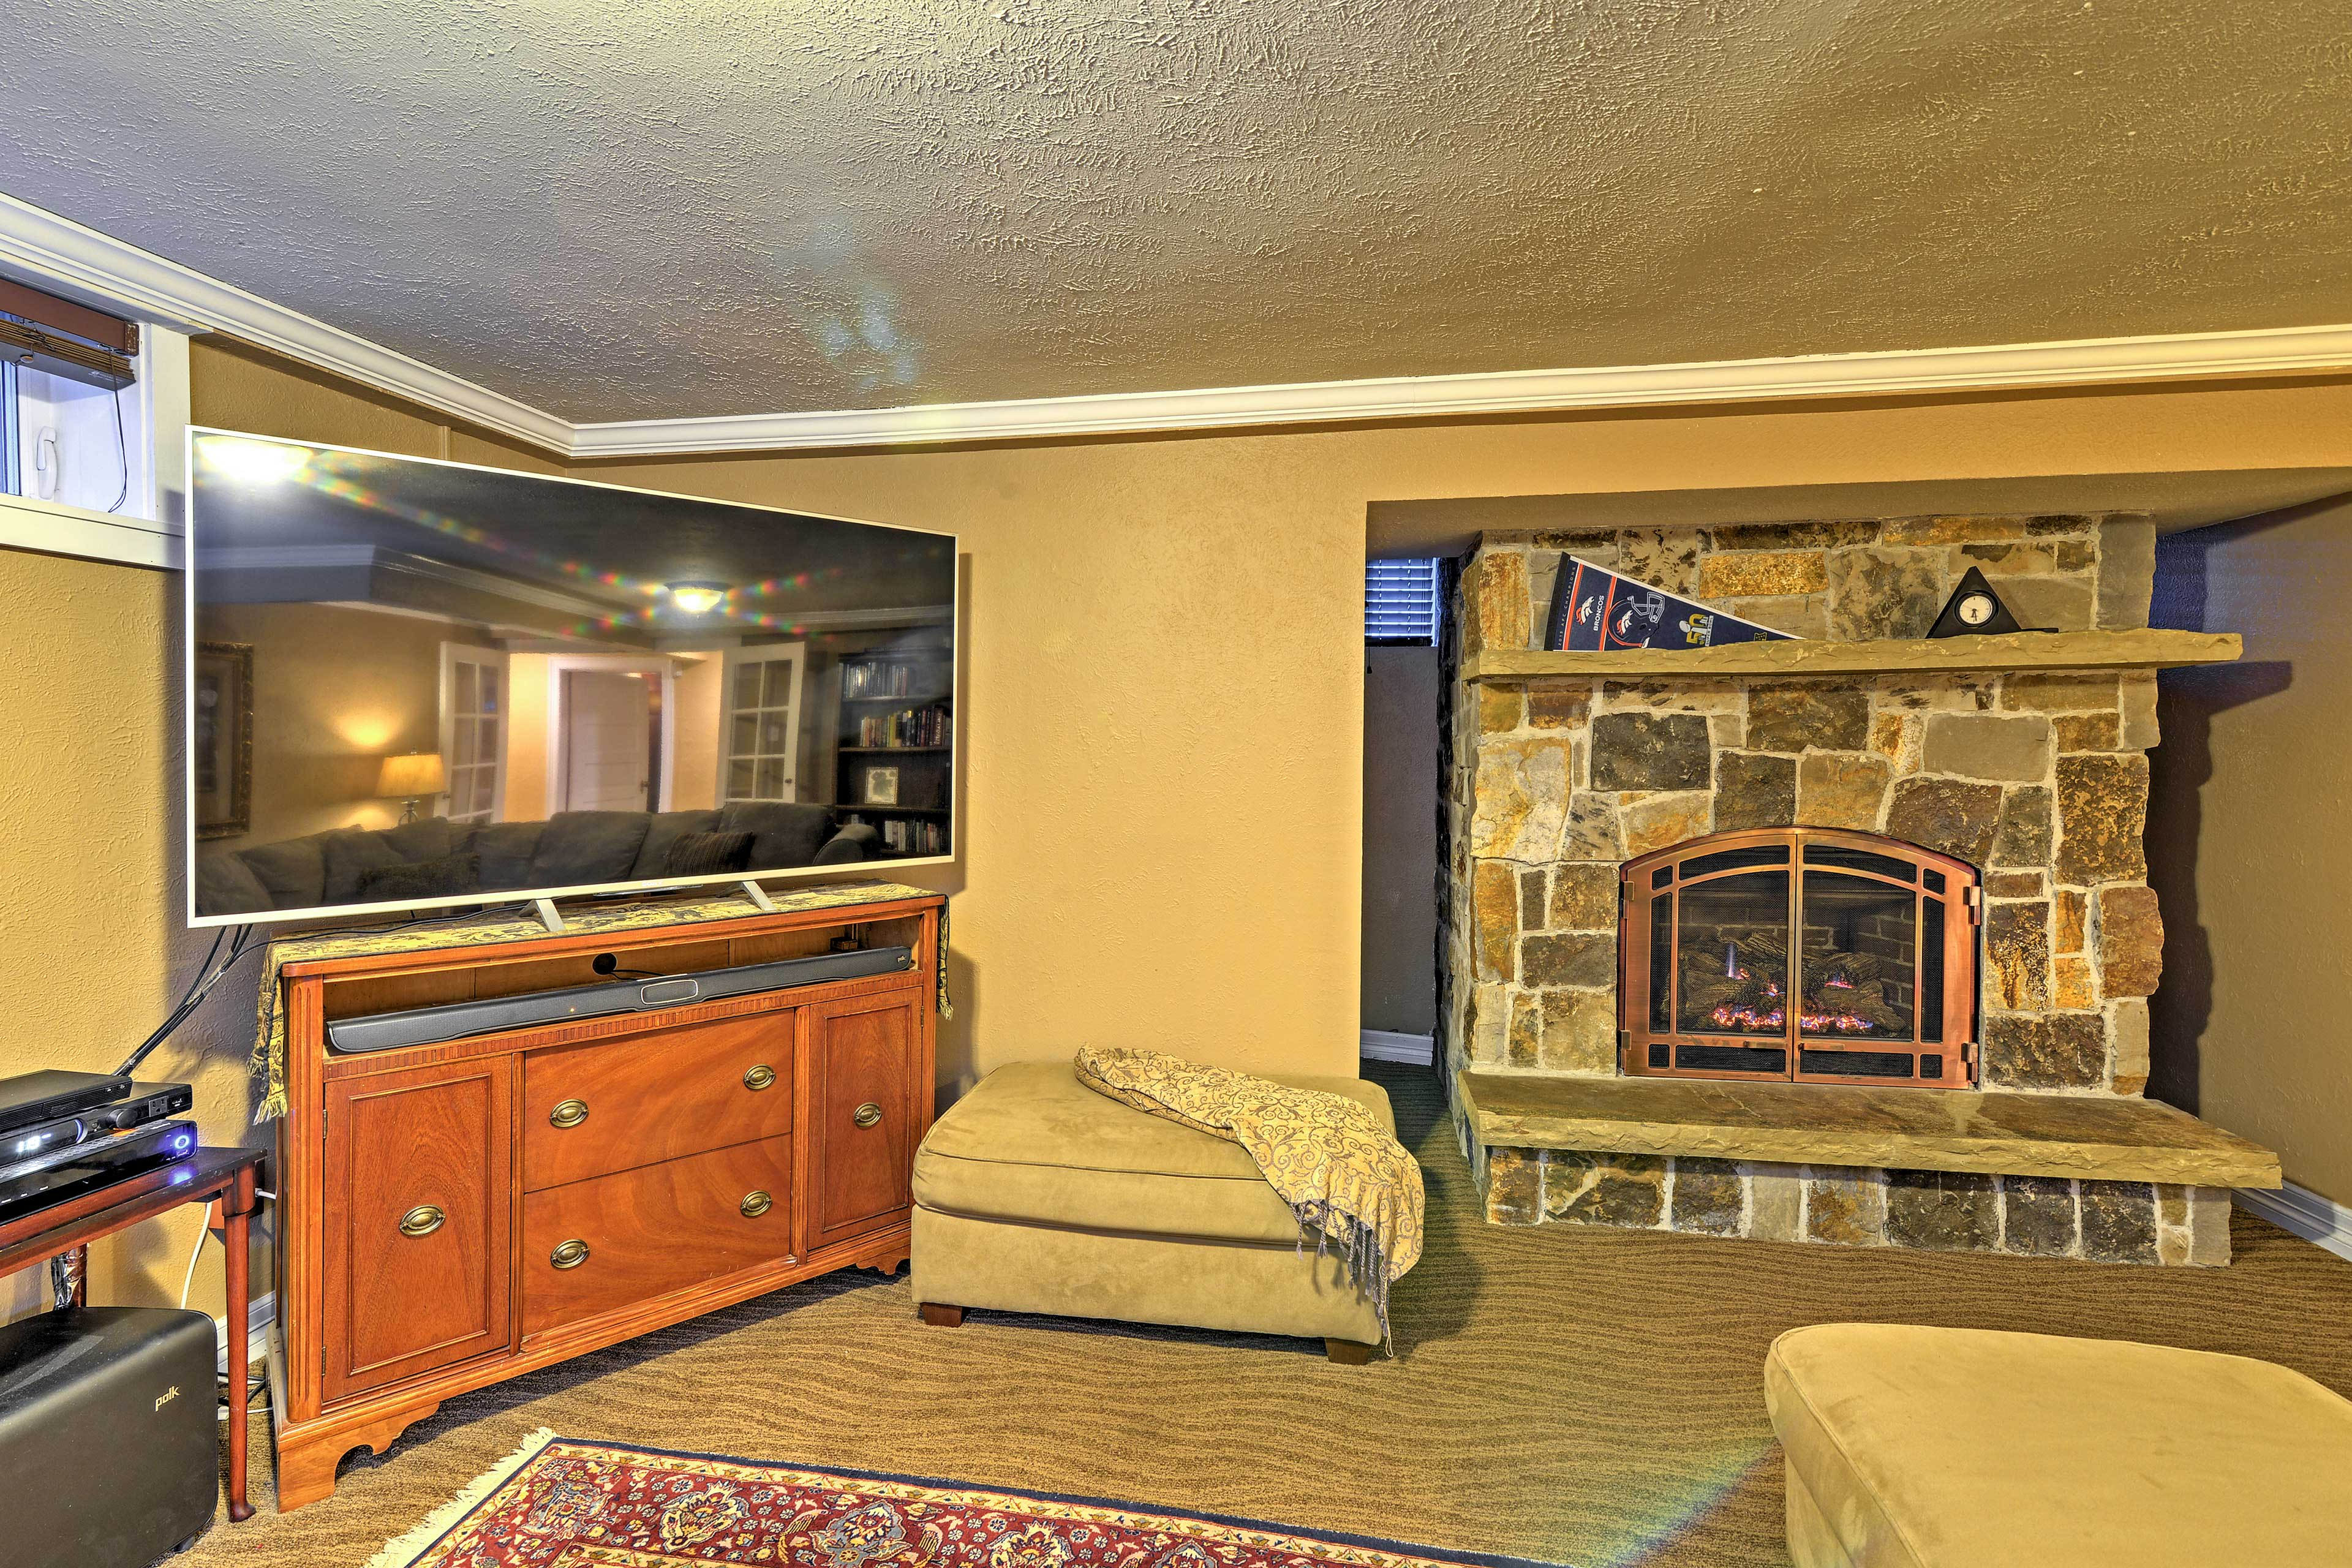 Stay warm by the gas fireplace while watching TV.